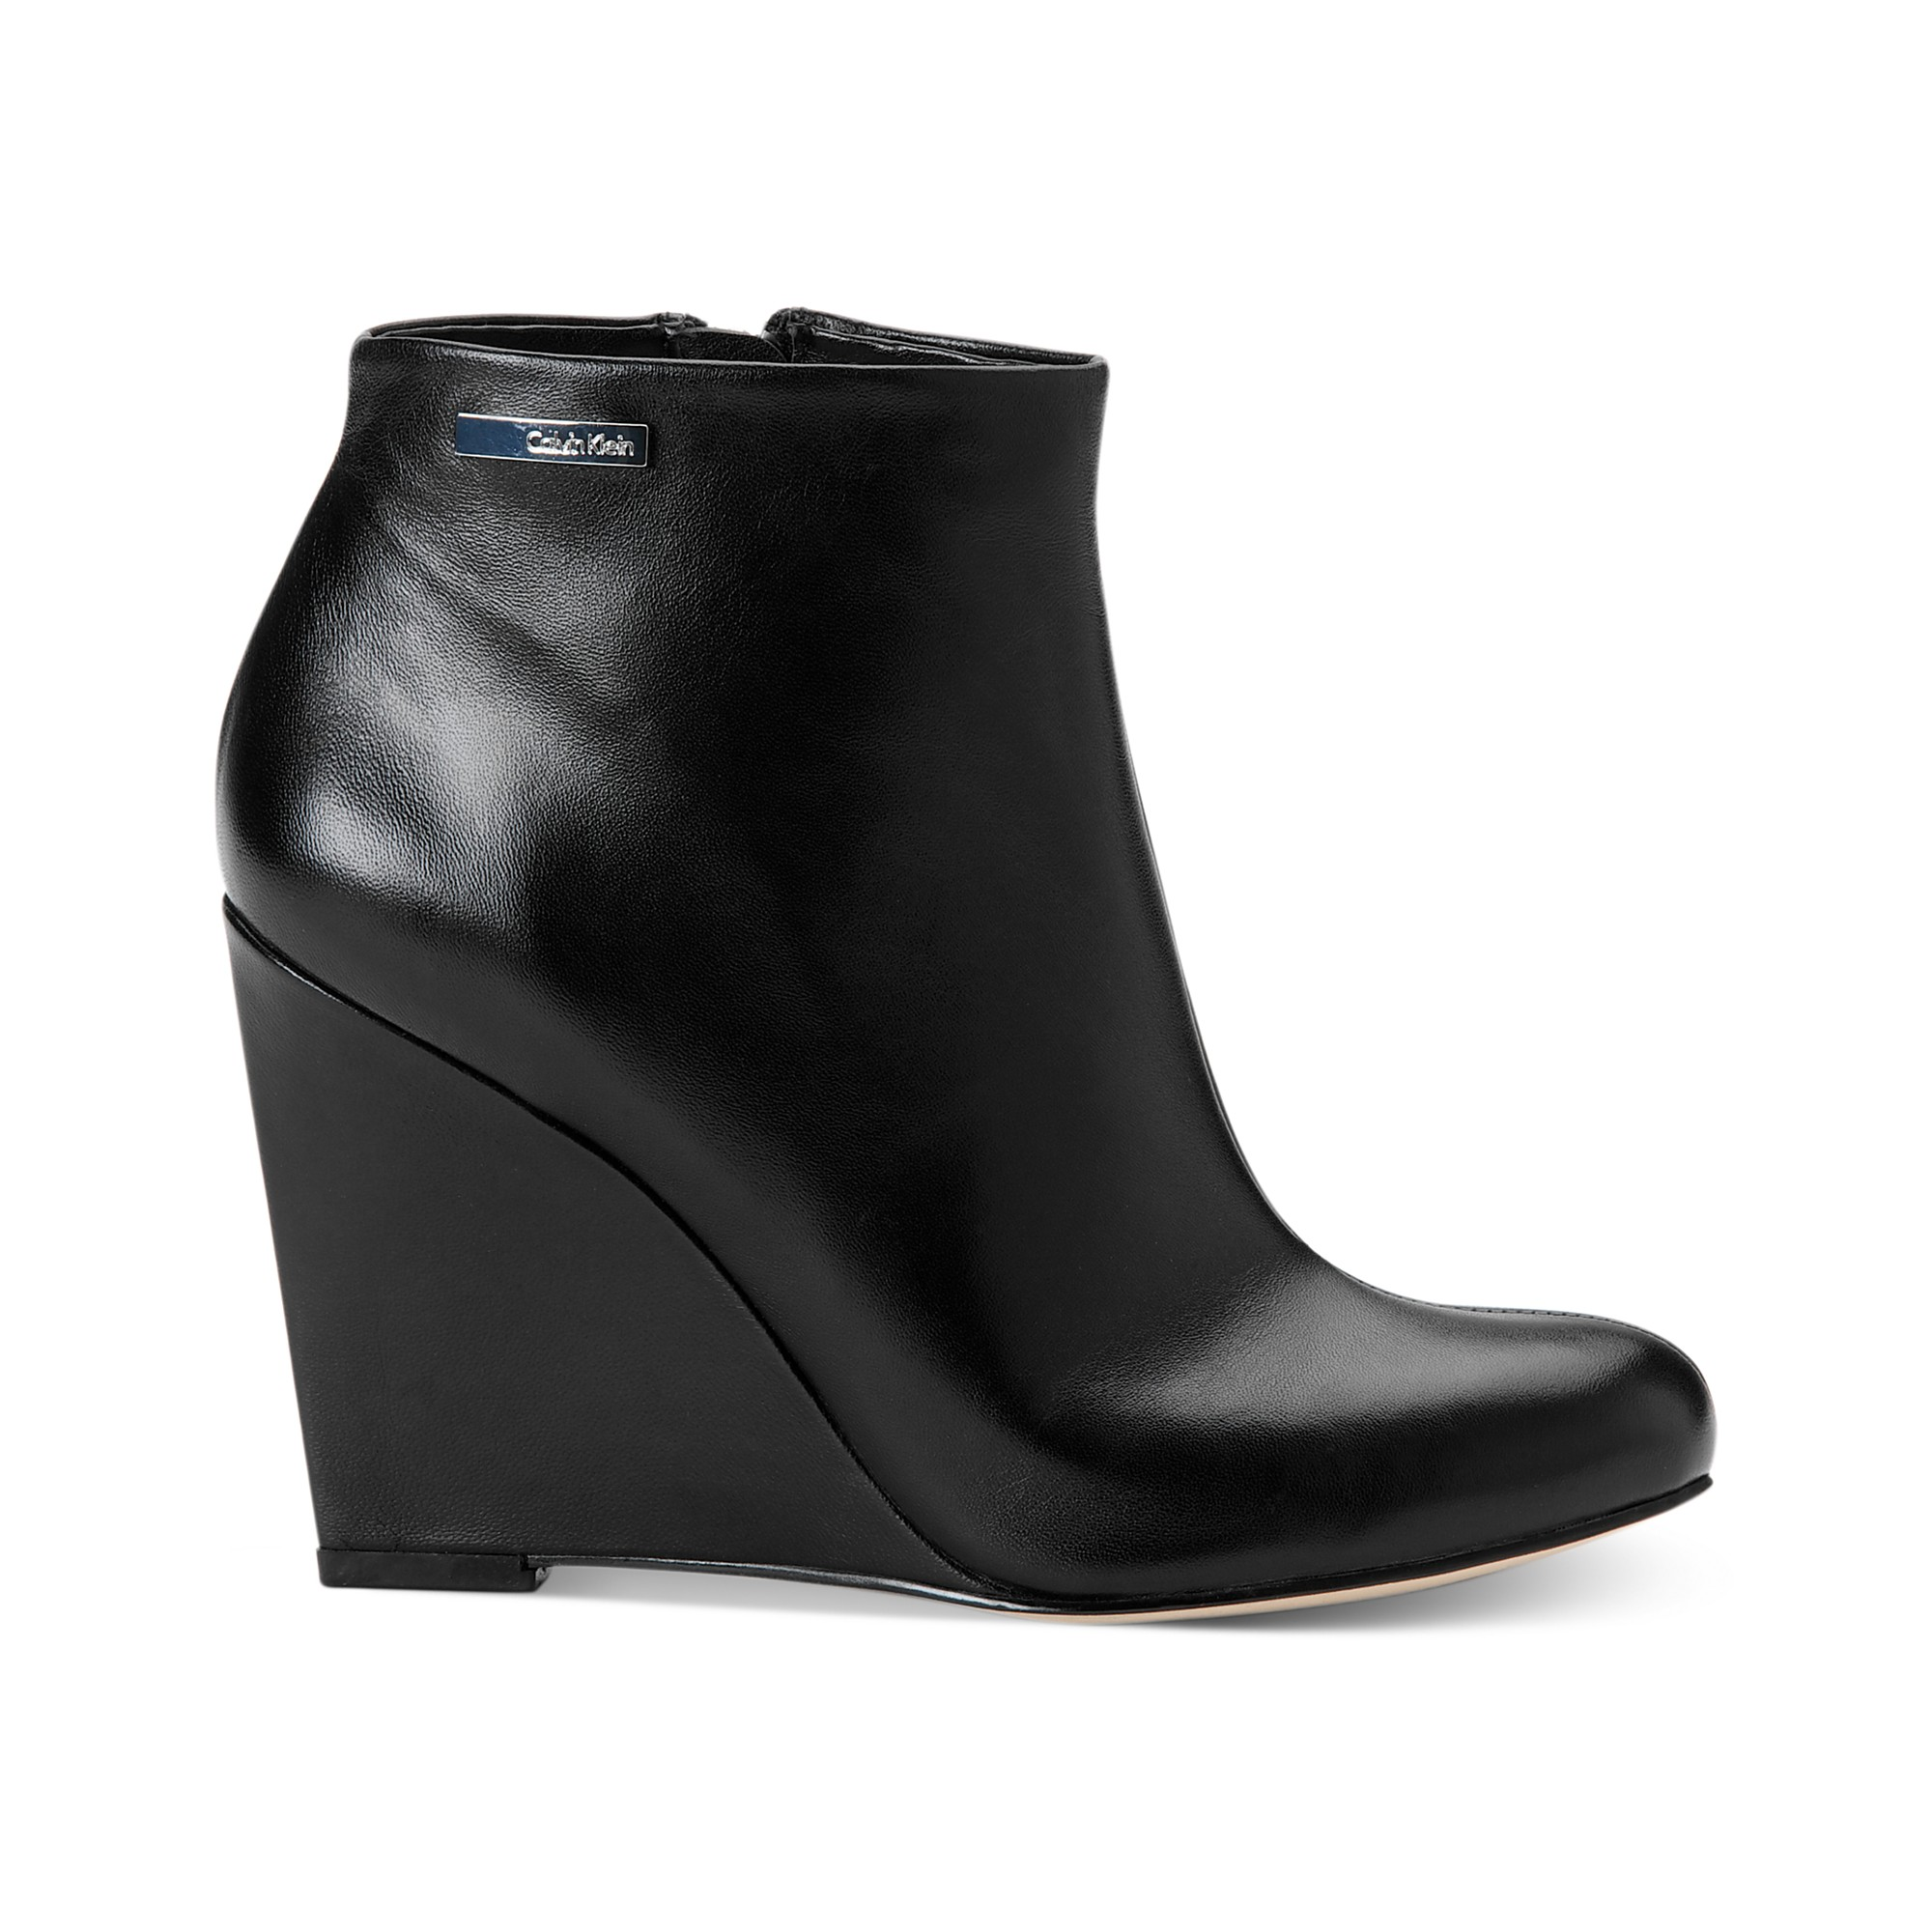 Find great deals on eBay for black leather wedge booties. Shop with confidence.